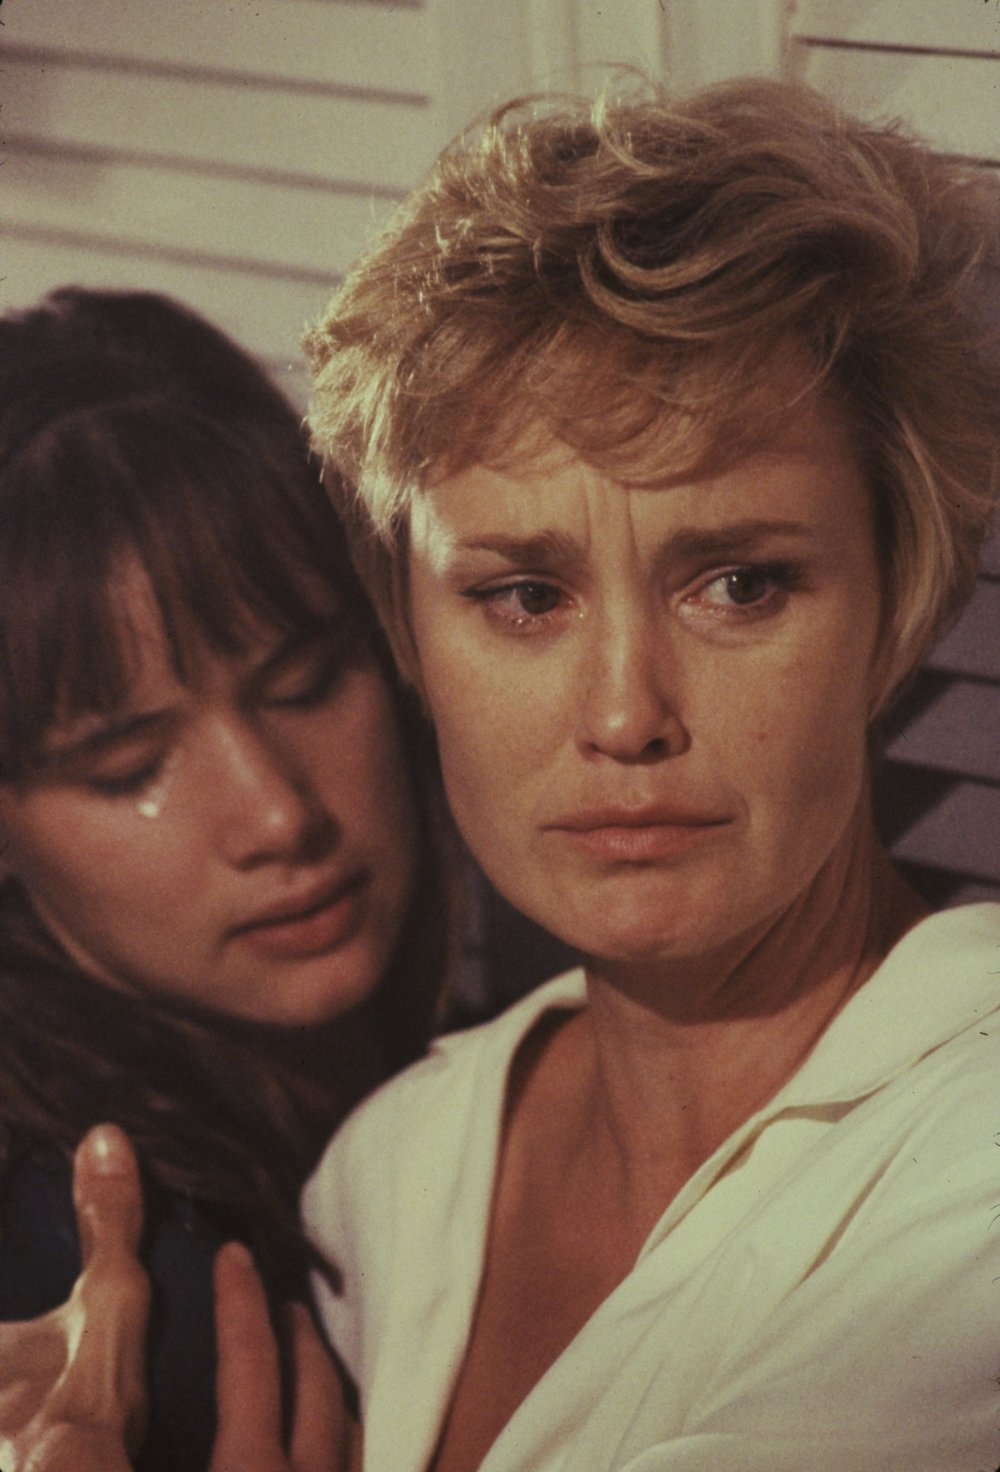 Jessica Lange and Juliette Lewis in Cape Fear (1991)